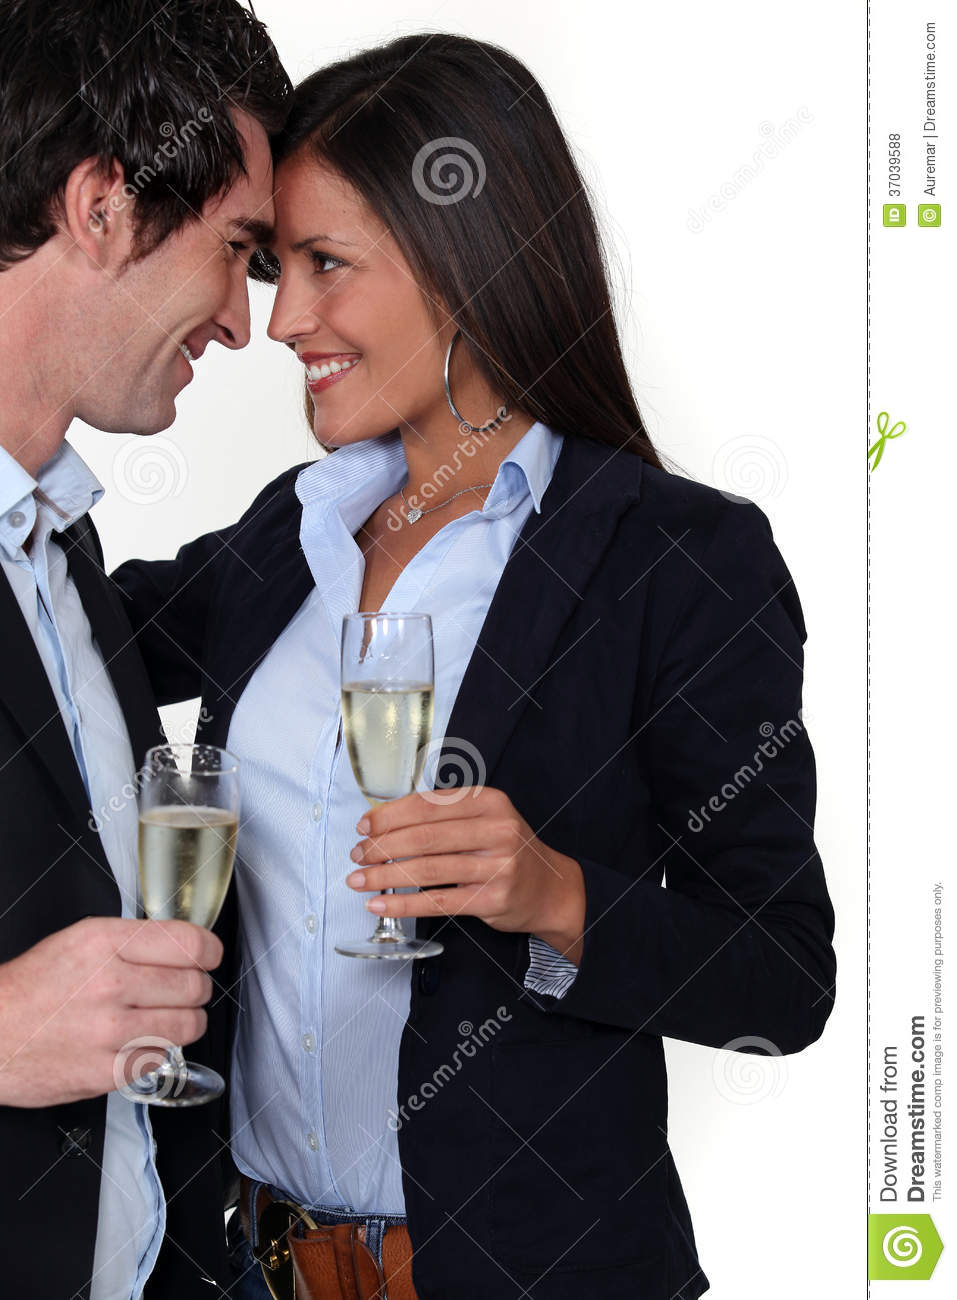 Man and woman flirting stock photo. Image of drink